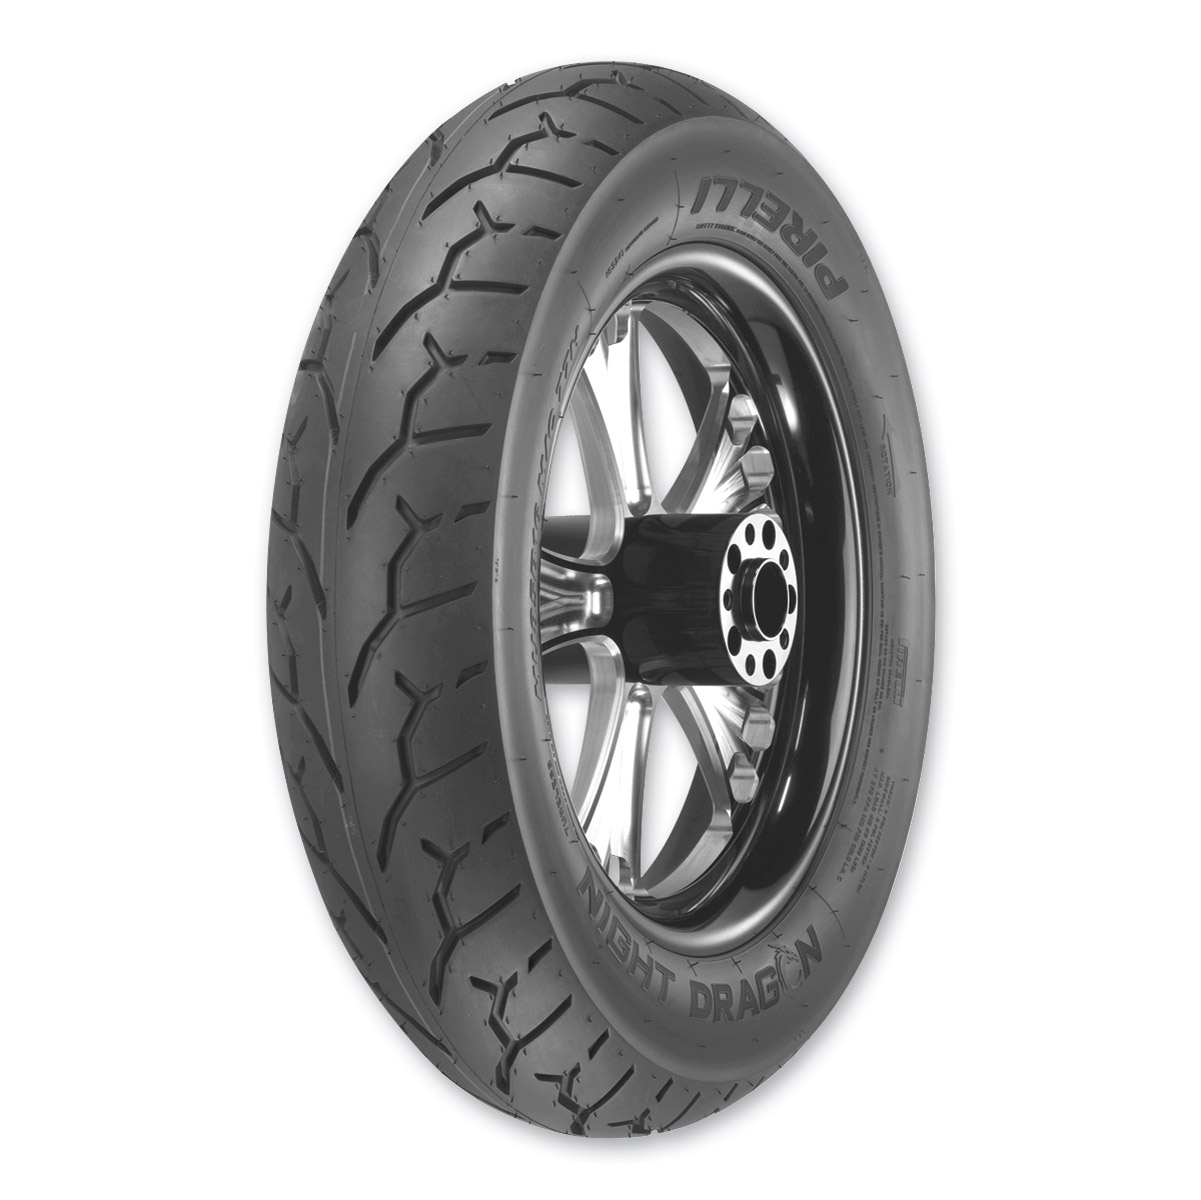 Pirelli Night Dragon MT90B16 Front Tire